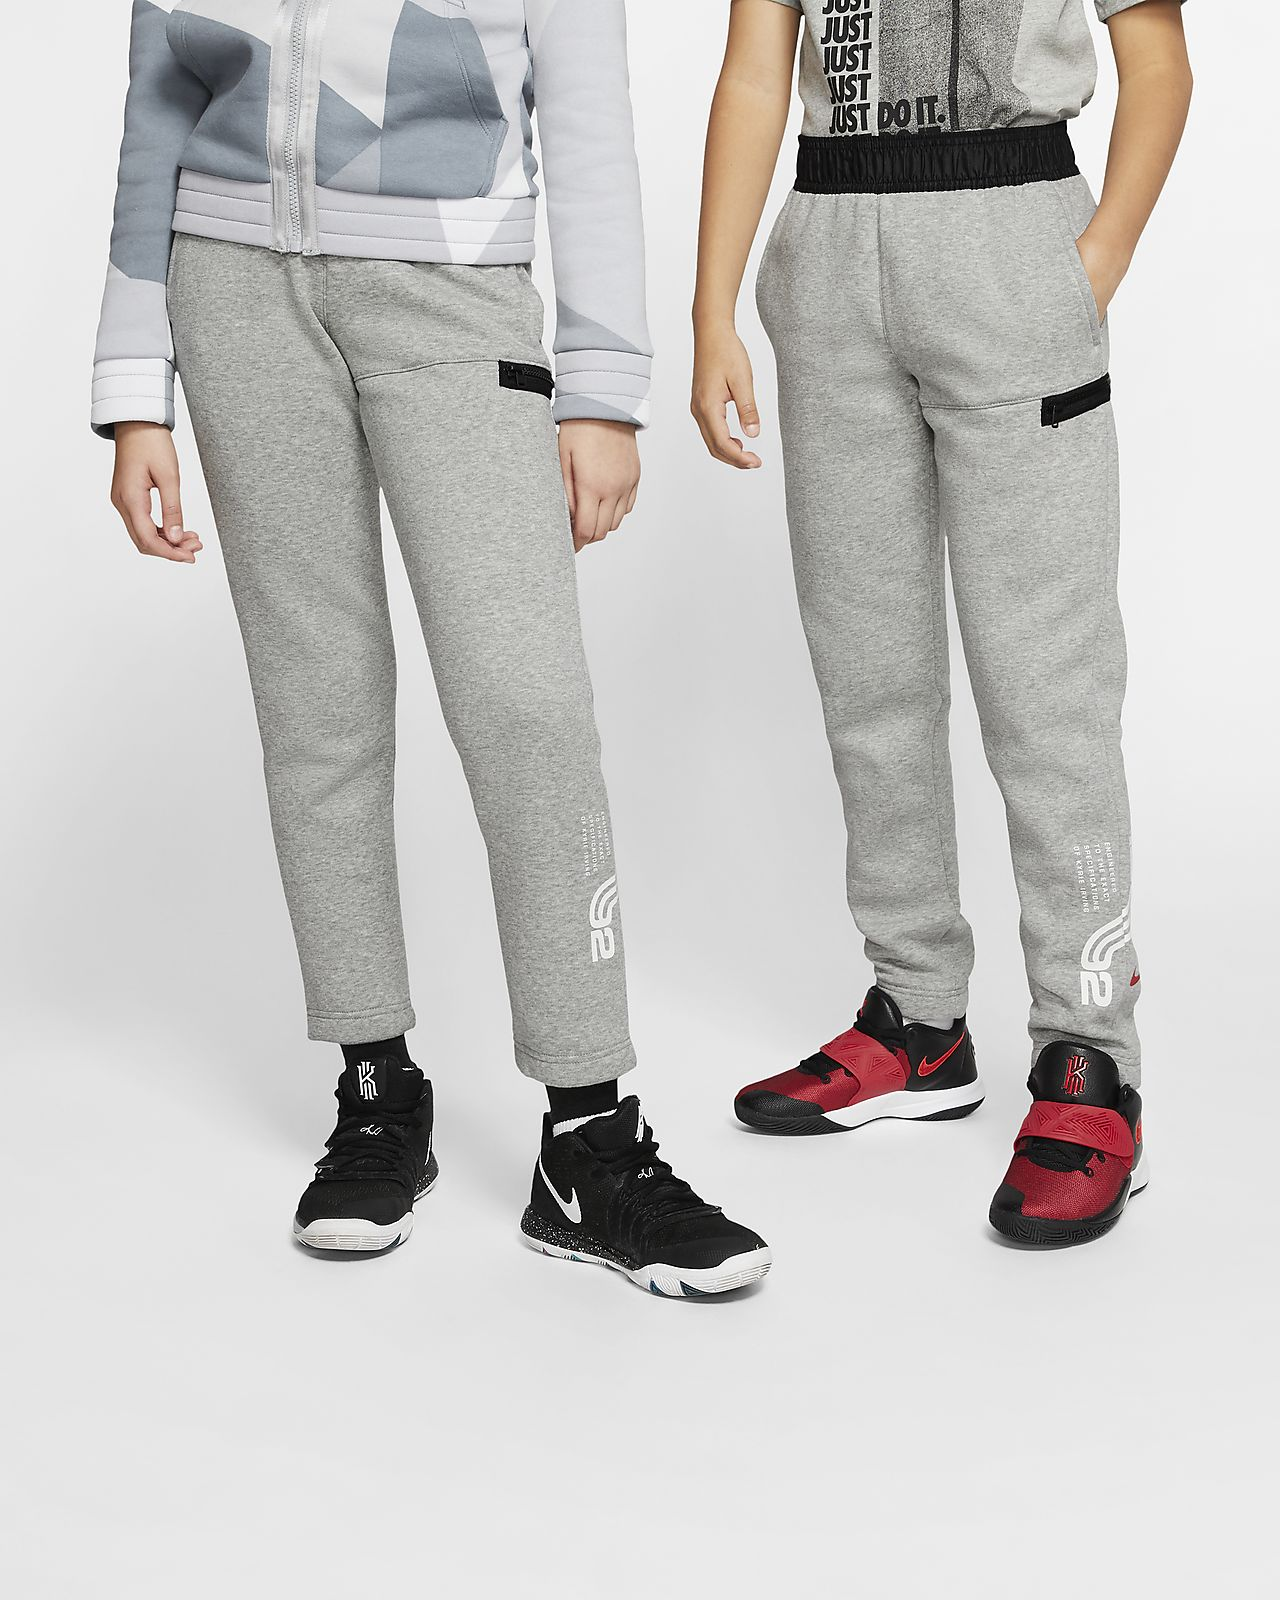 Kyrie Big Kids' Fleece Basketball Pants